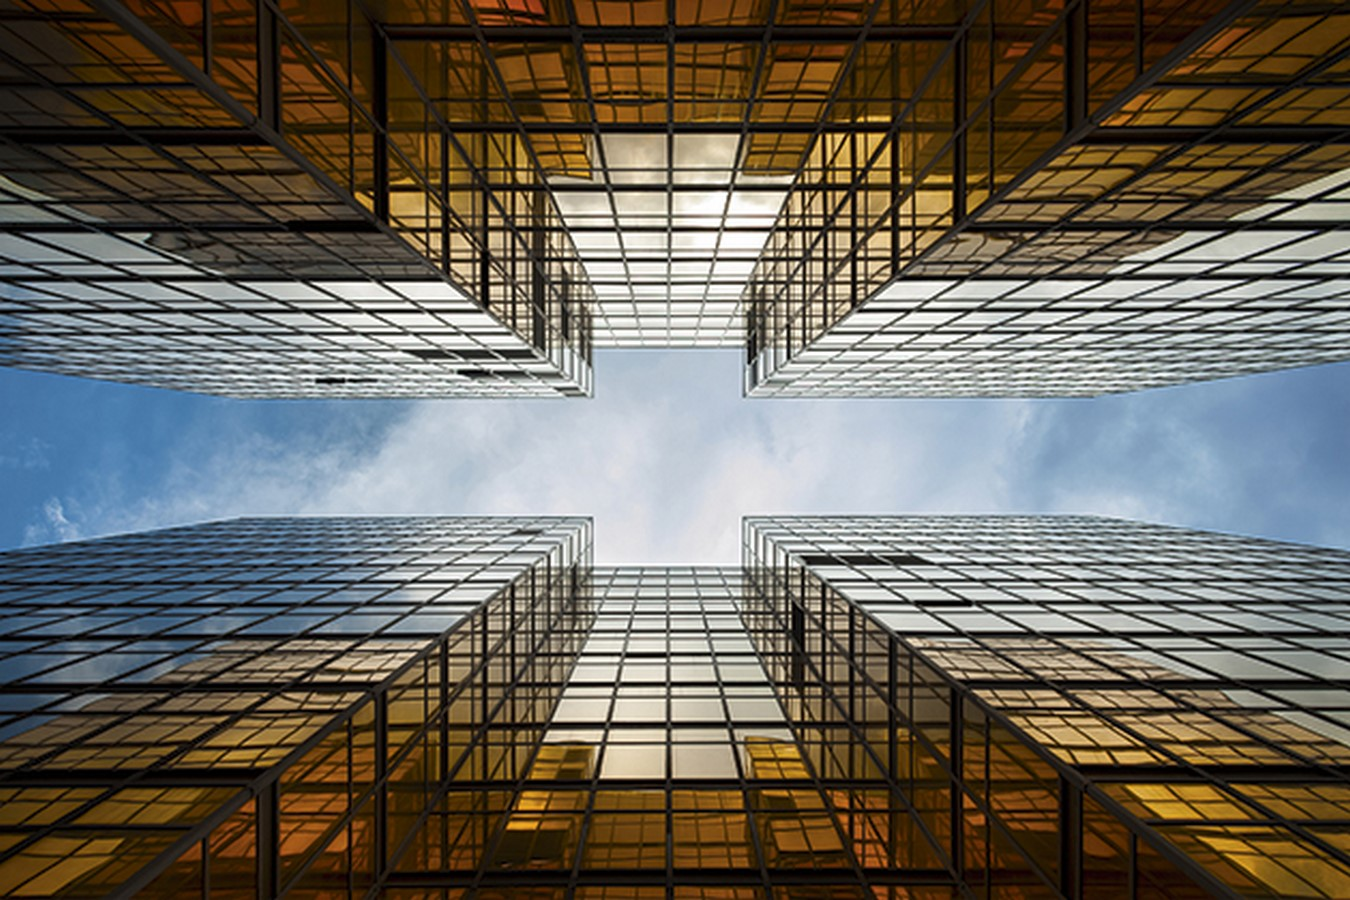 Architectural Photography: The art of capturing structures - Sheet2